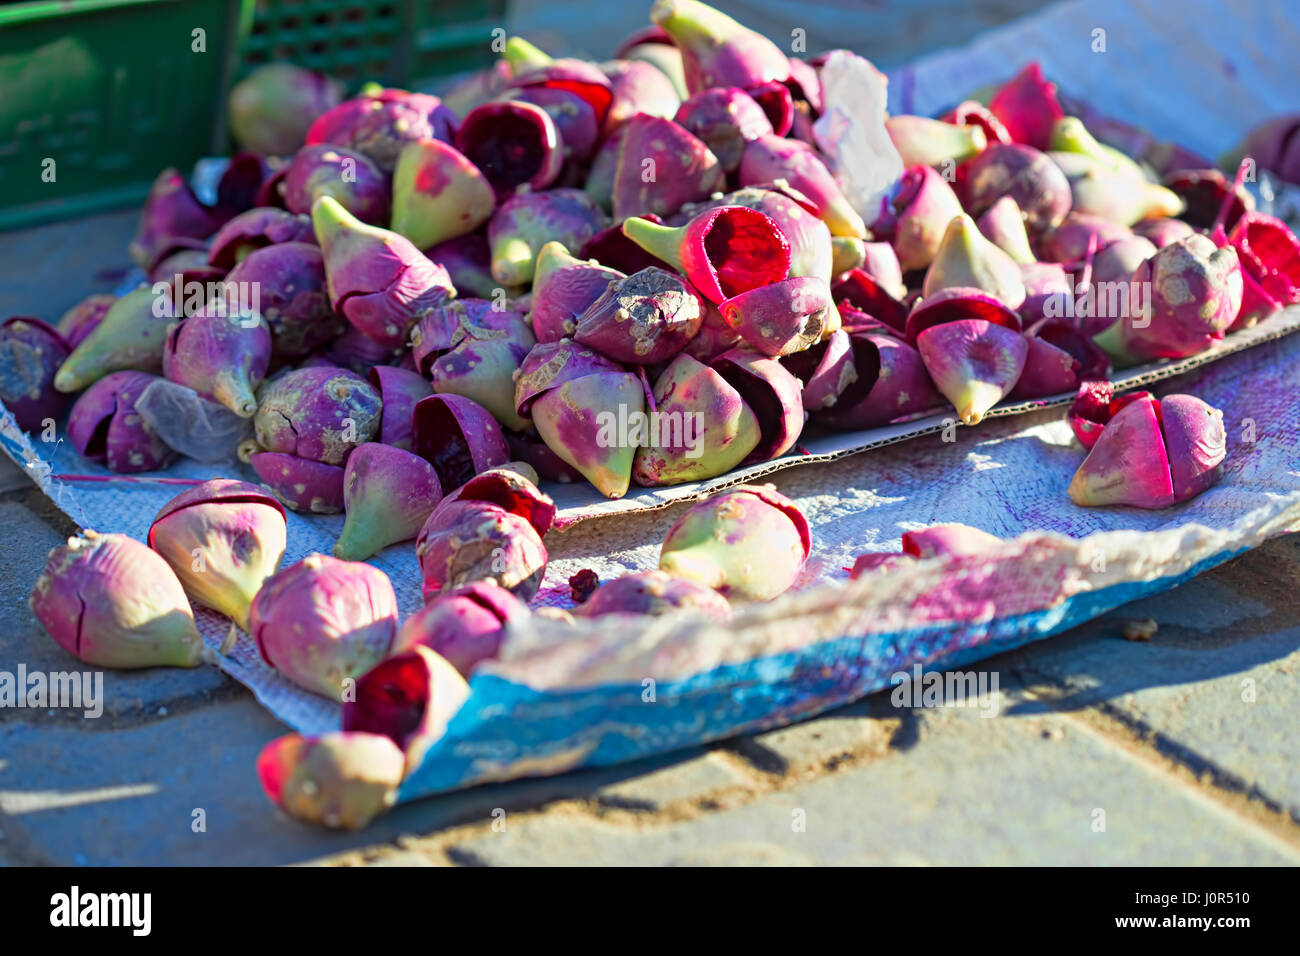 Opuntia prickly pear fruit - Stock Image